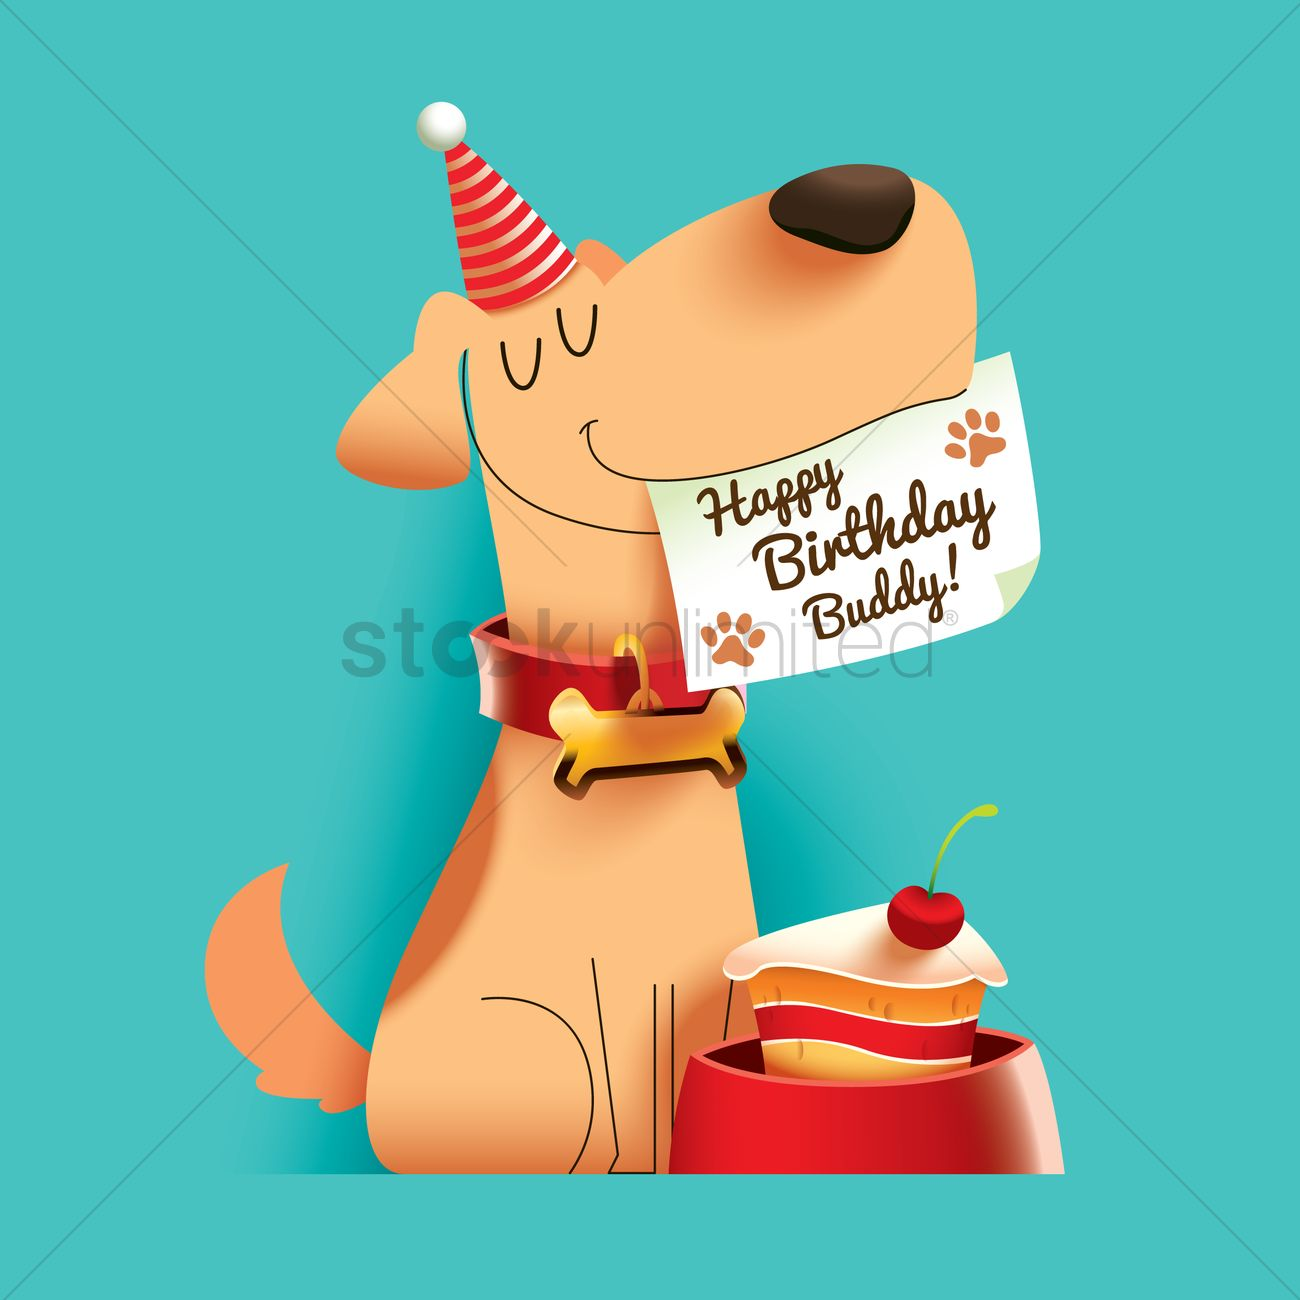 Dog With Happy Birthday Buddy Note Vector Image 1797678 Stockunlimited